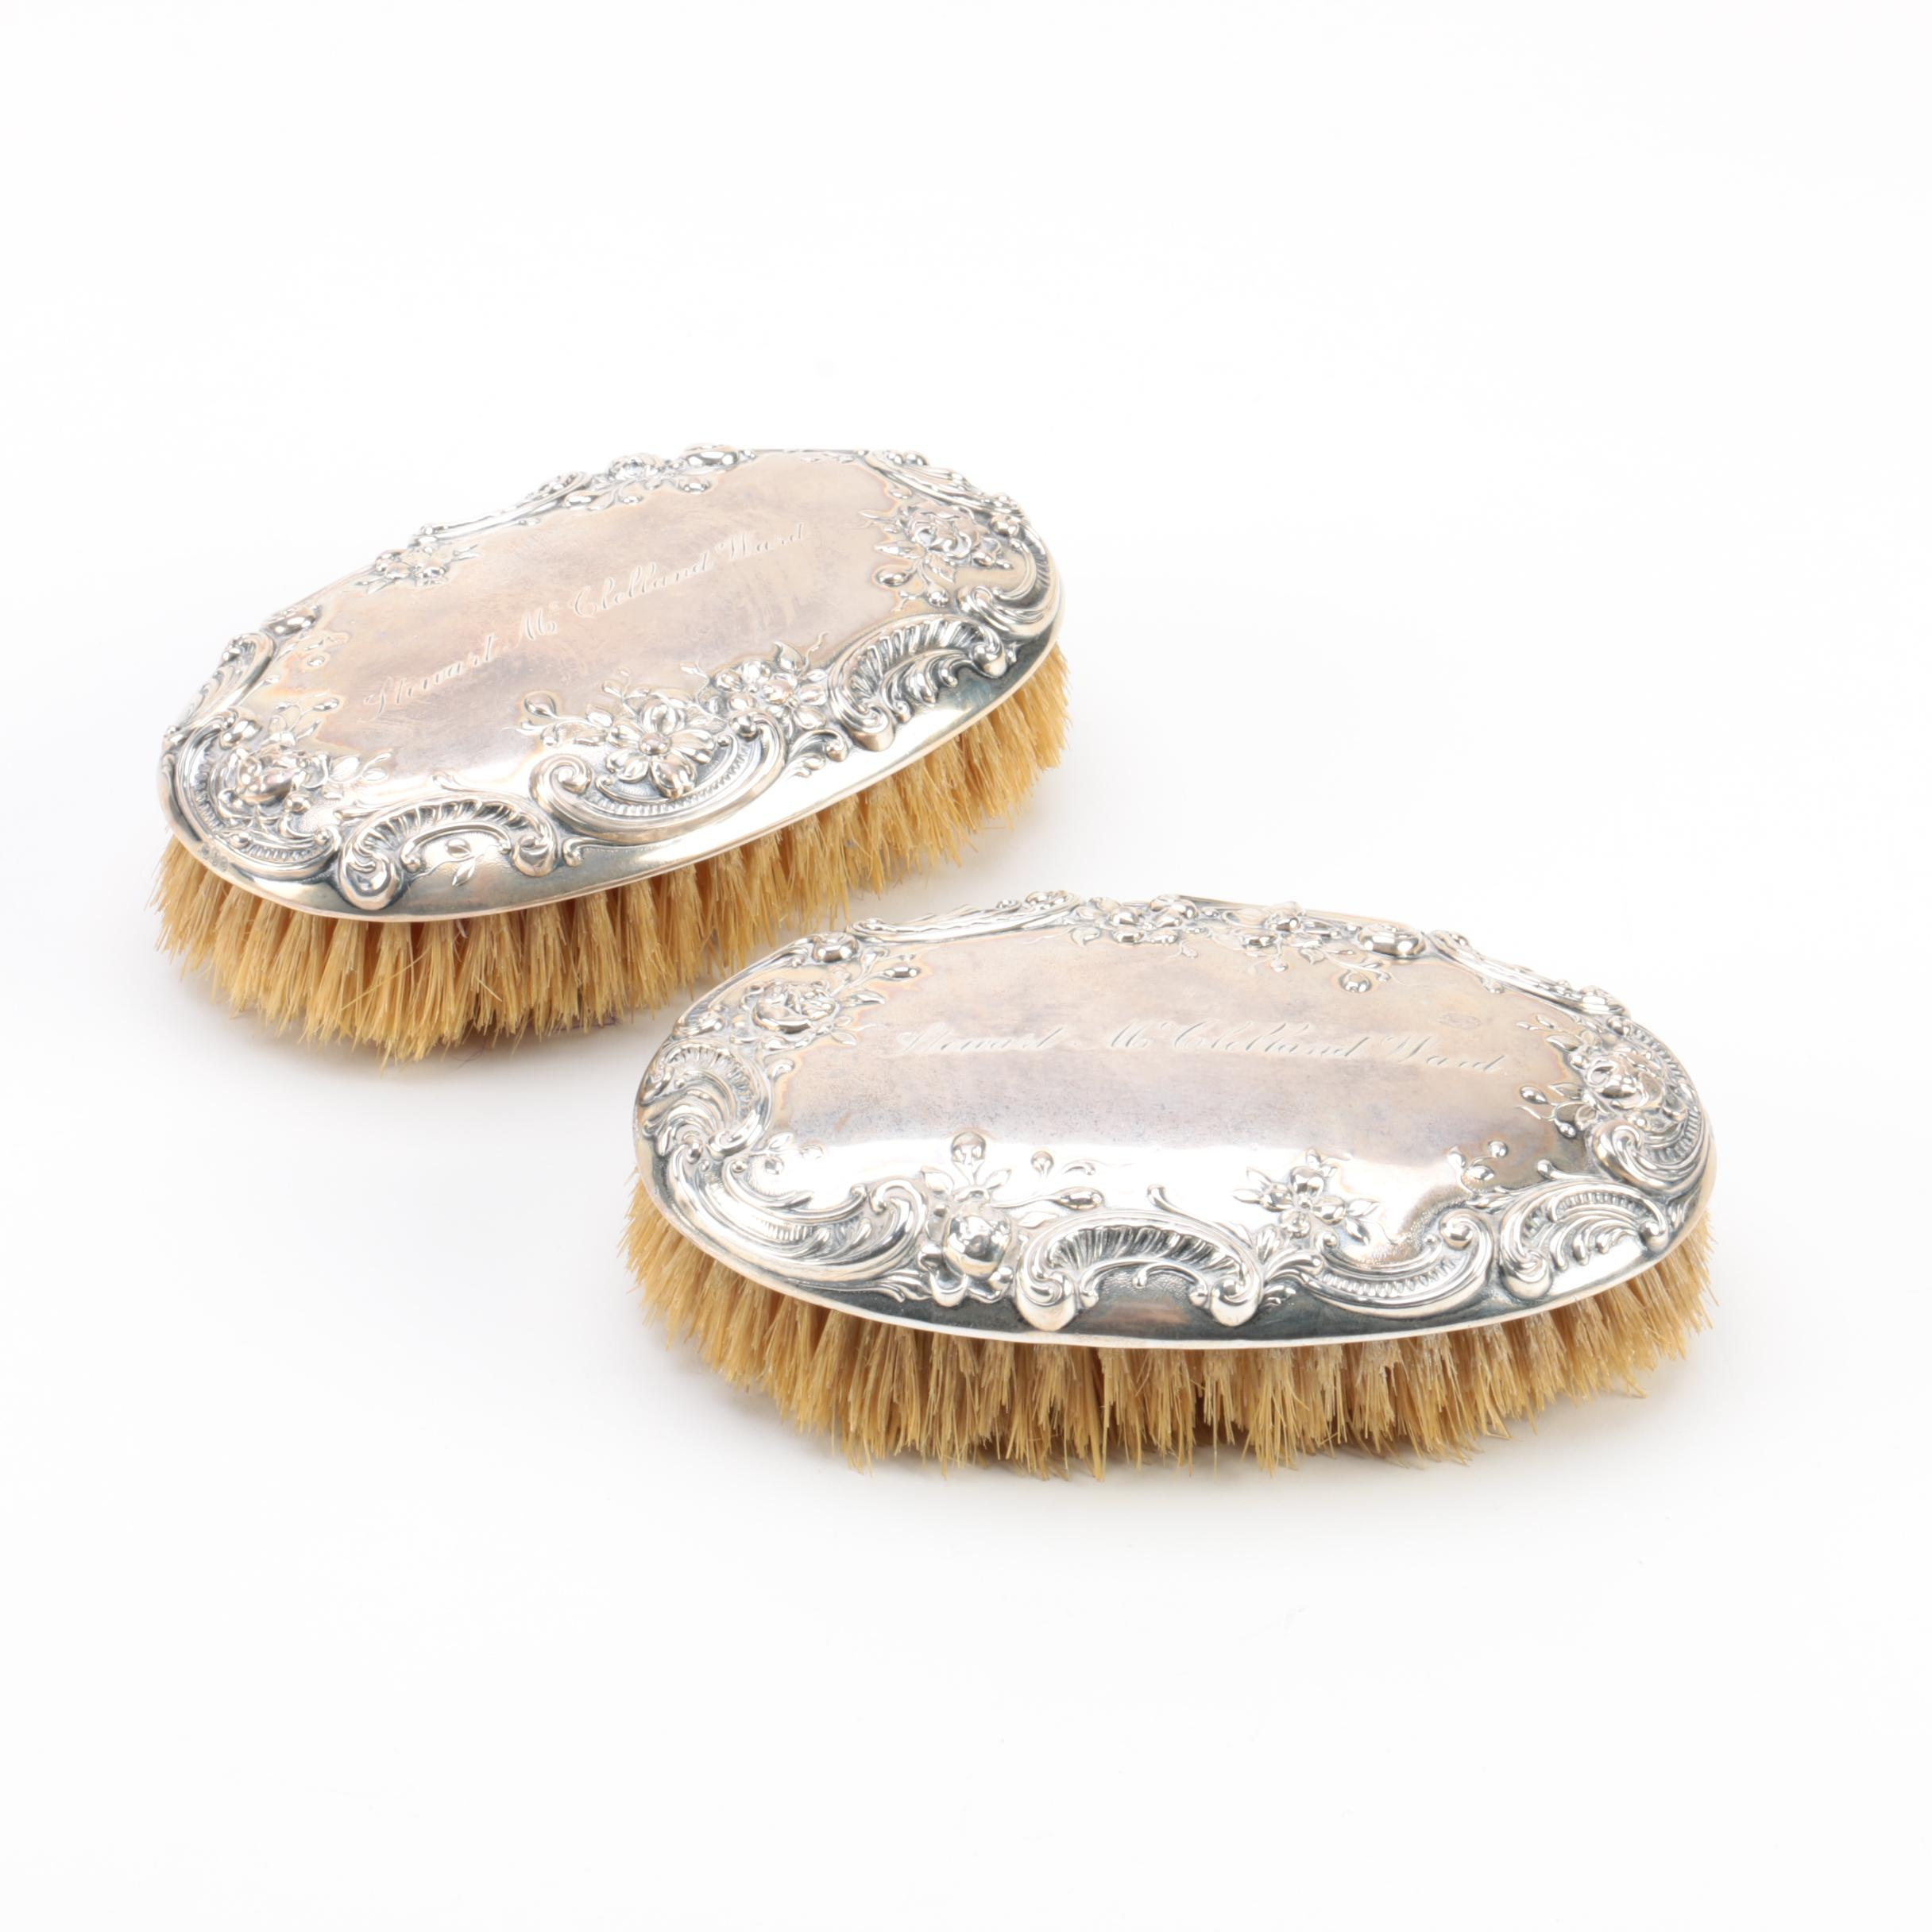 Gorham Sterling Silver Military Brushes